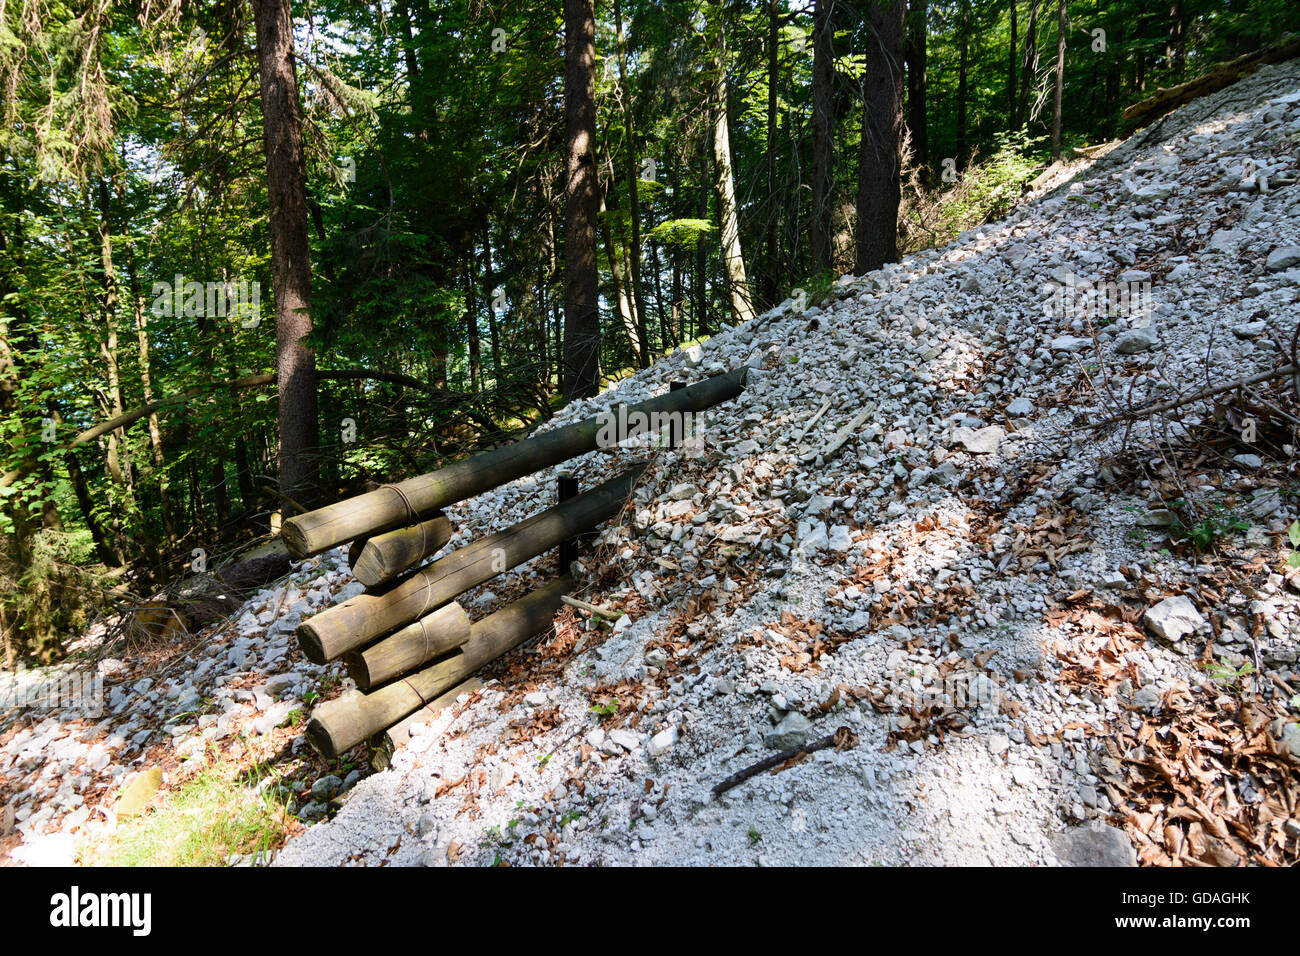 Steinbach am Attersee: Shoring against mudflows from roundwood, Austria, Oberösterreich, Upper Austria, Salzkammergut - Stock Image